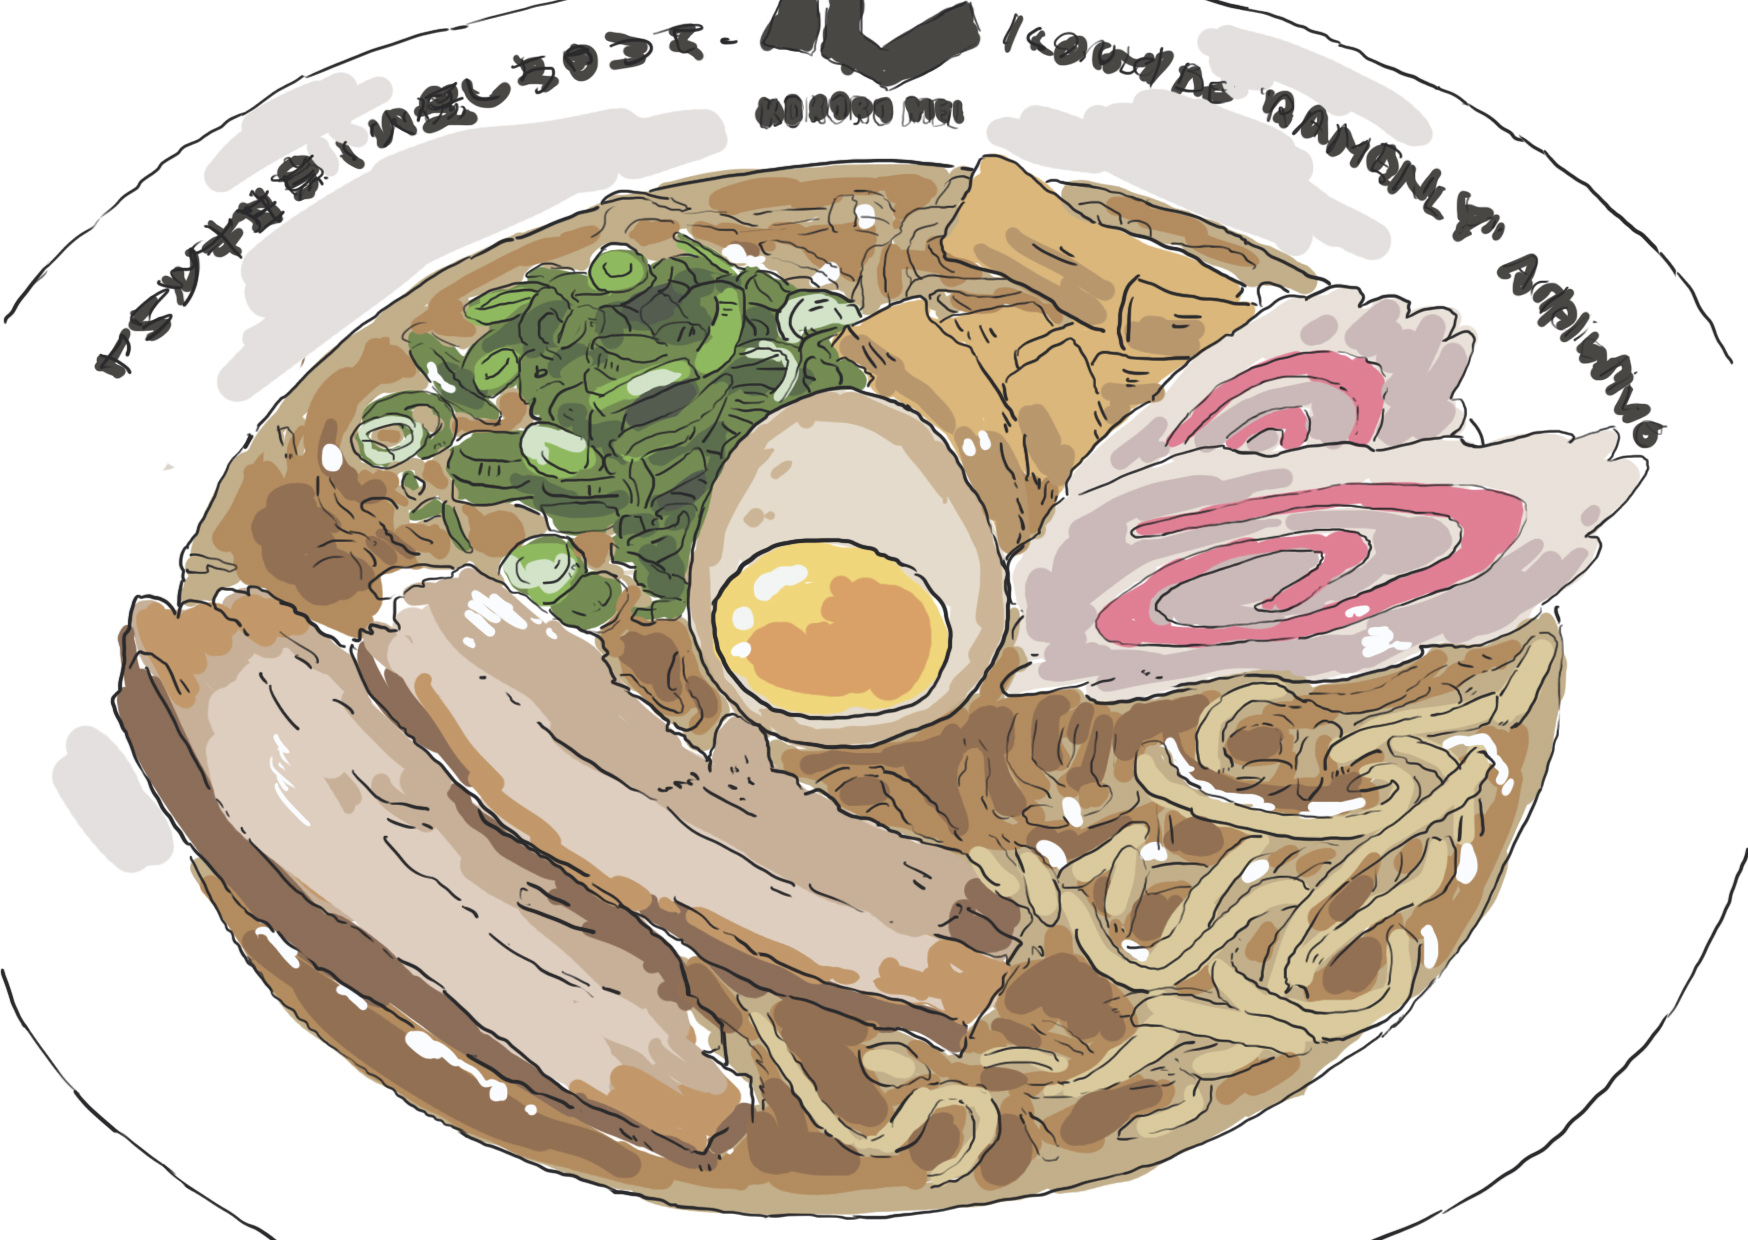 The Best Free Ramen Drawing Images  Download From 56 Free Drawings Of Ramen At Getdrawings